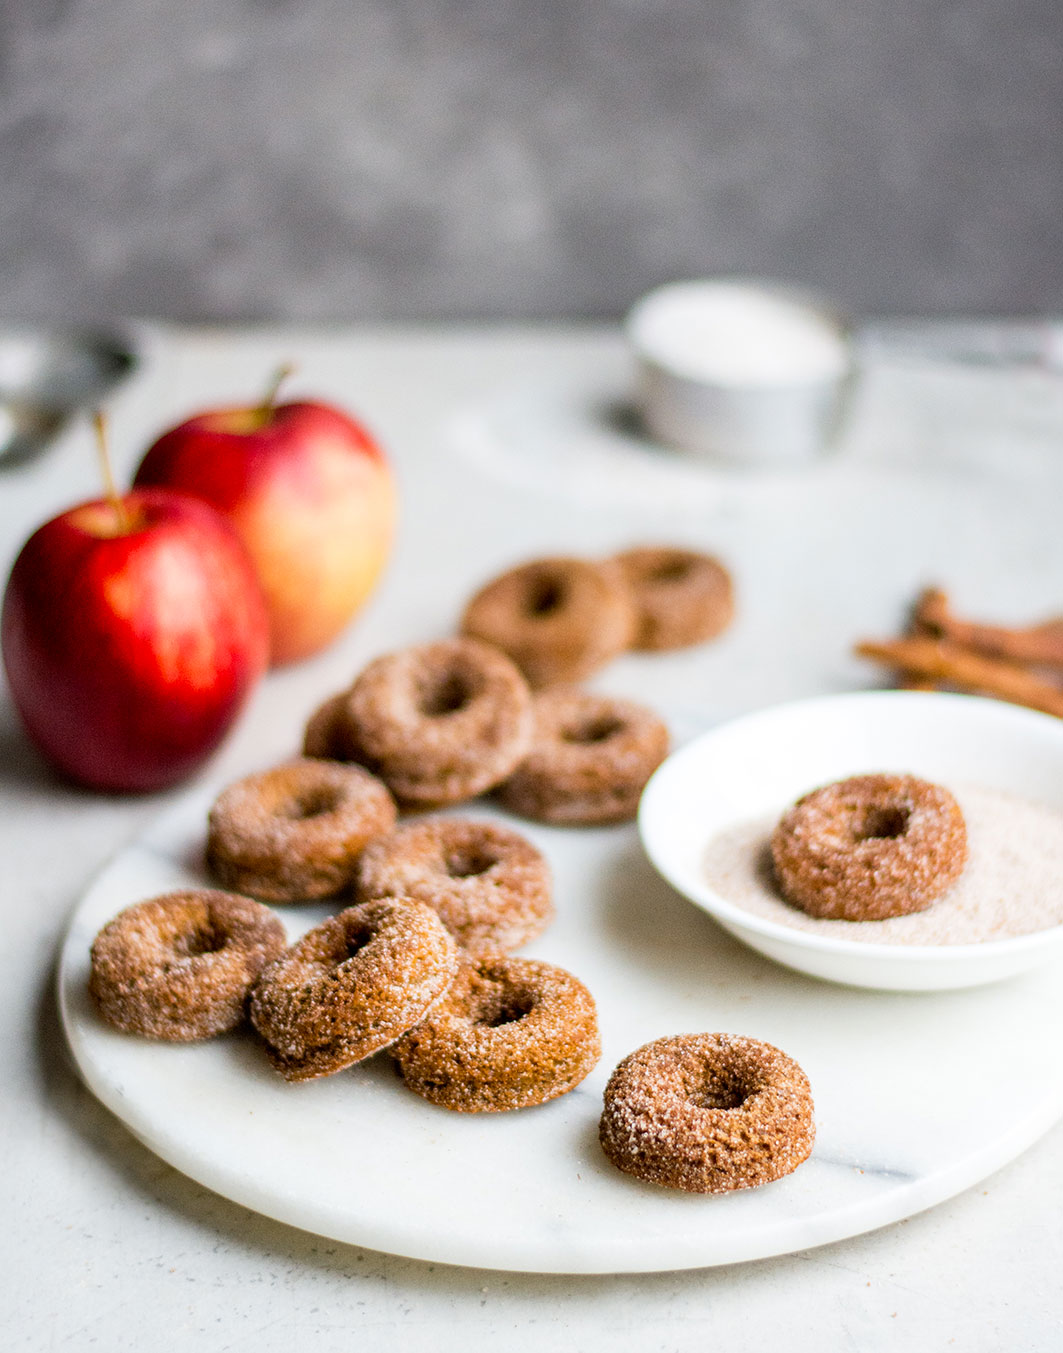 Donuts close up on marble with cinnamon sugar with apples